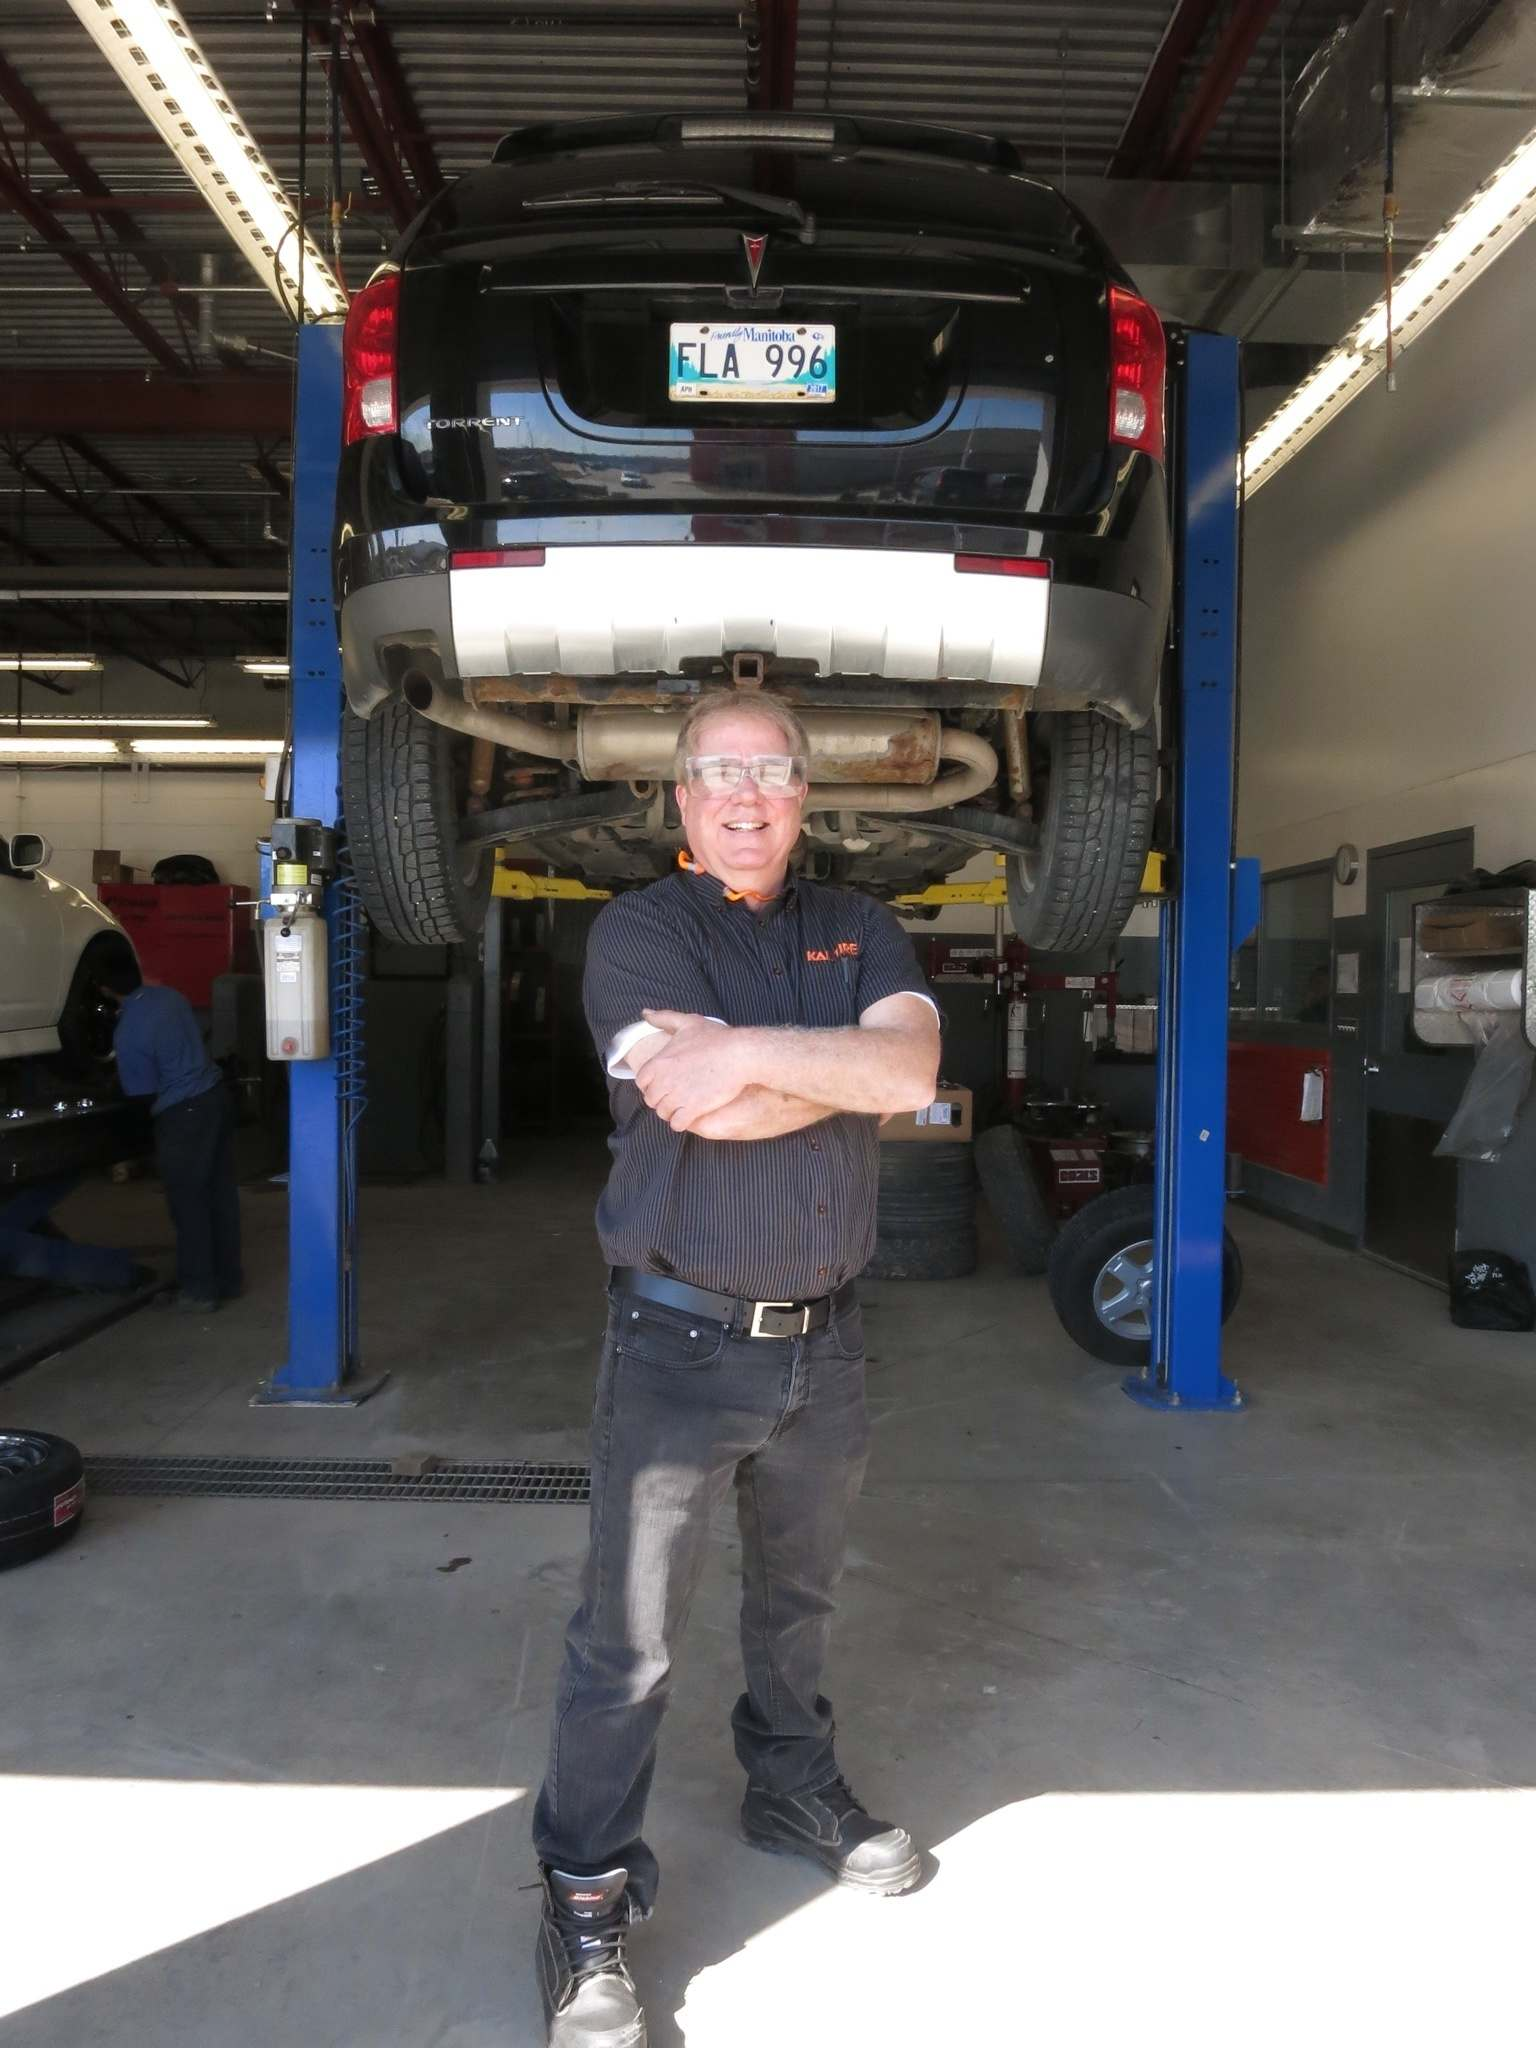 KELLY TAYLOR / WINNIPEG FREE PRESSMotoring TV's resident mechanic, Bll Gardiner, was recently in Winnipeg outlining the importance of having your vehicle inspected regularly.